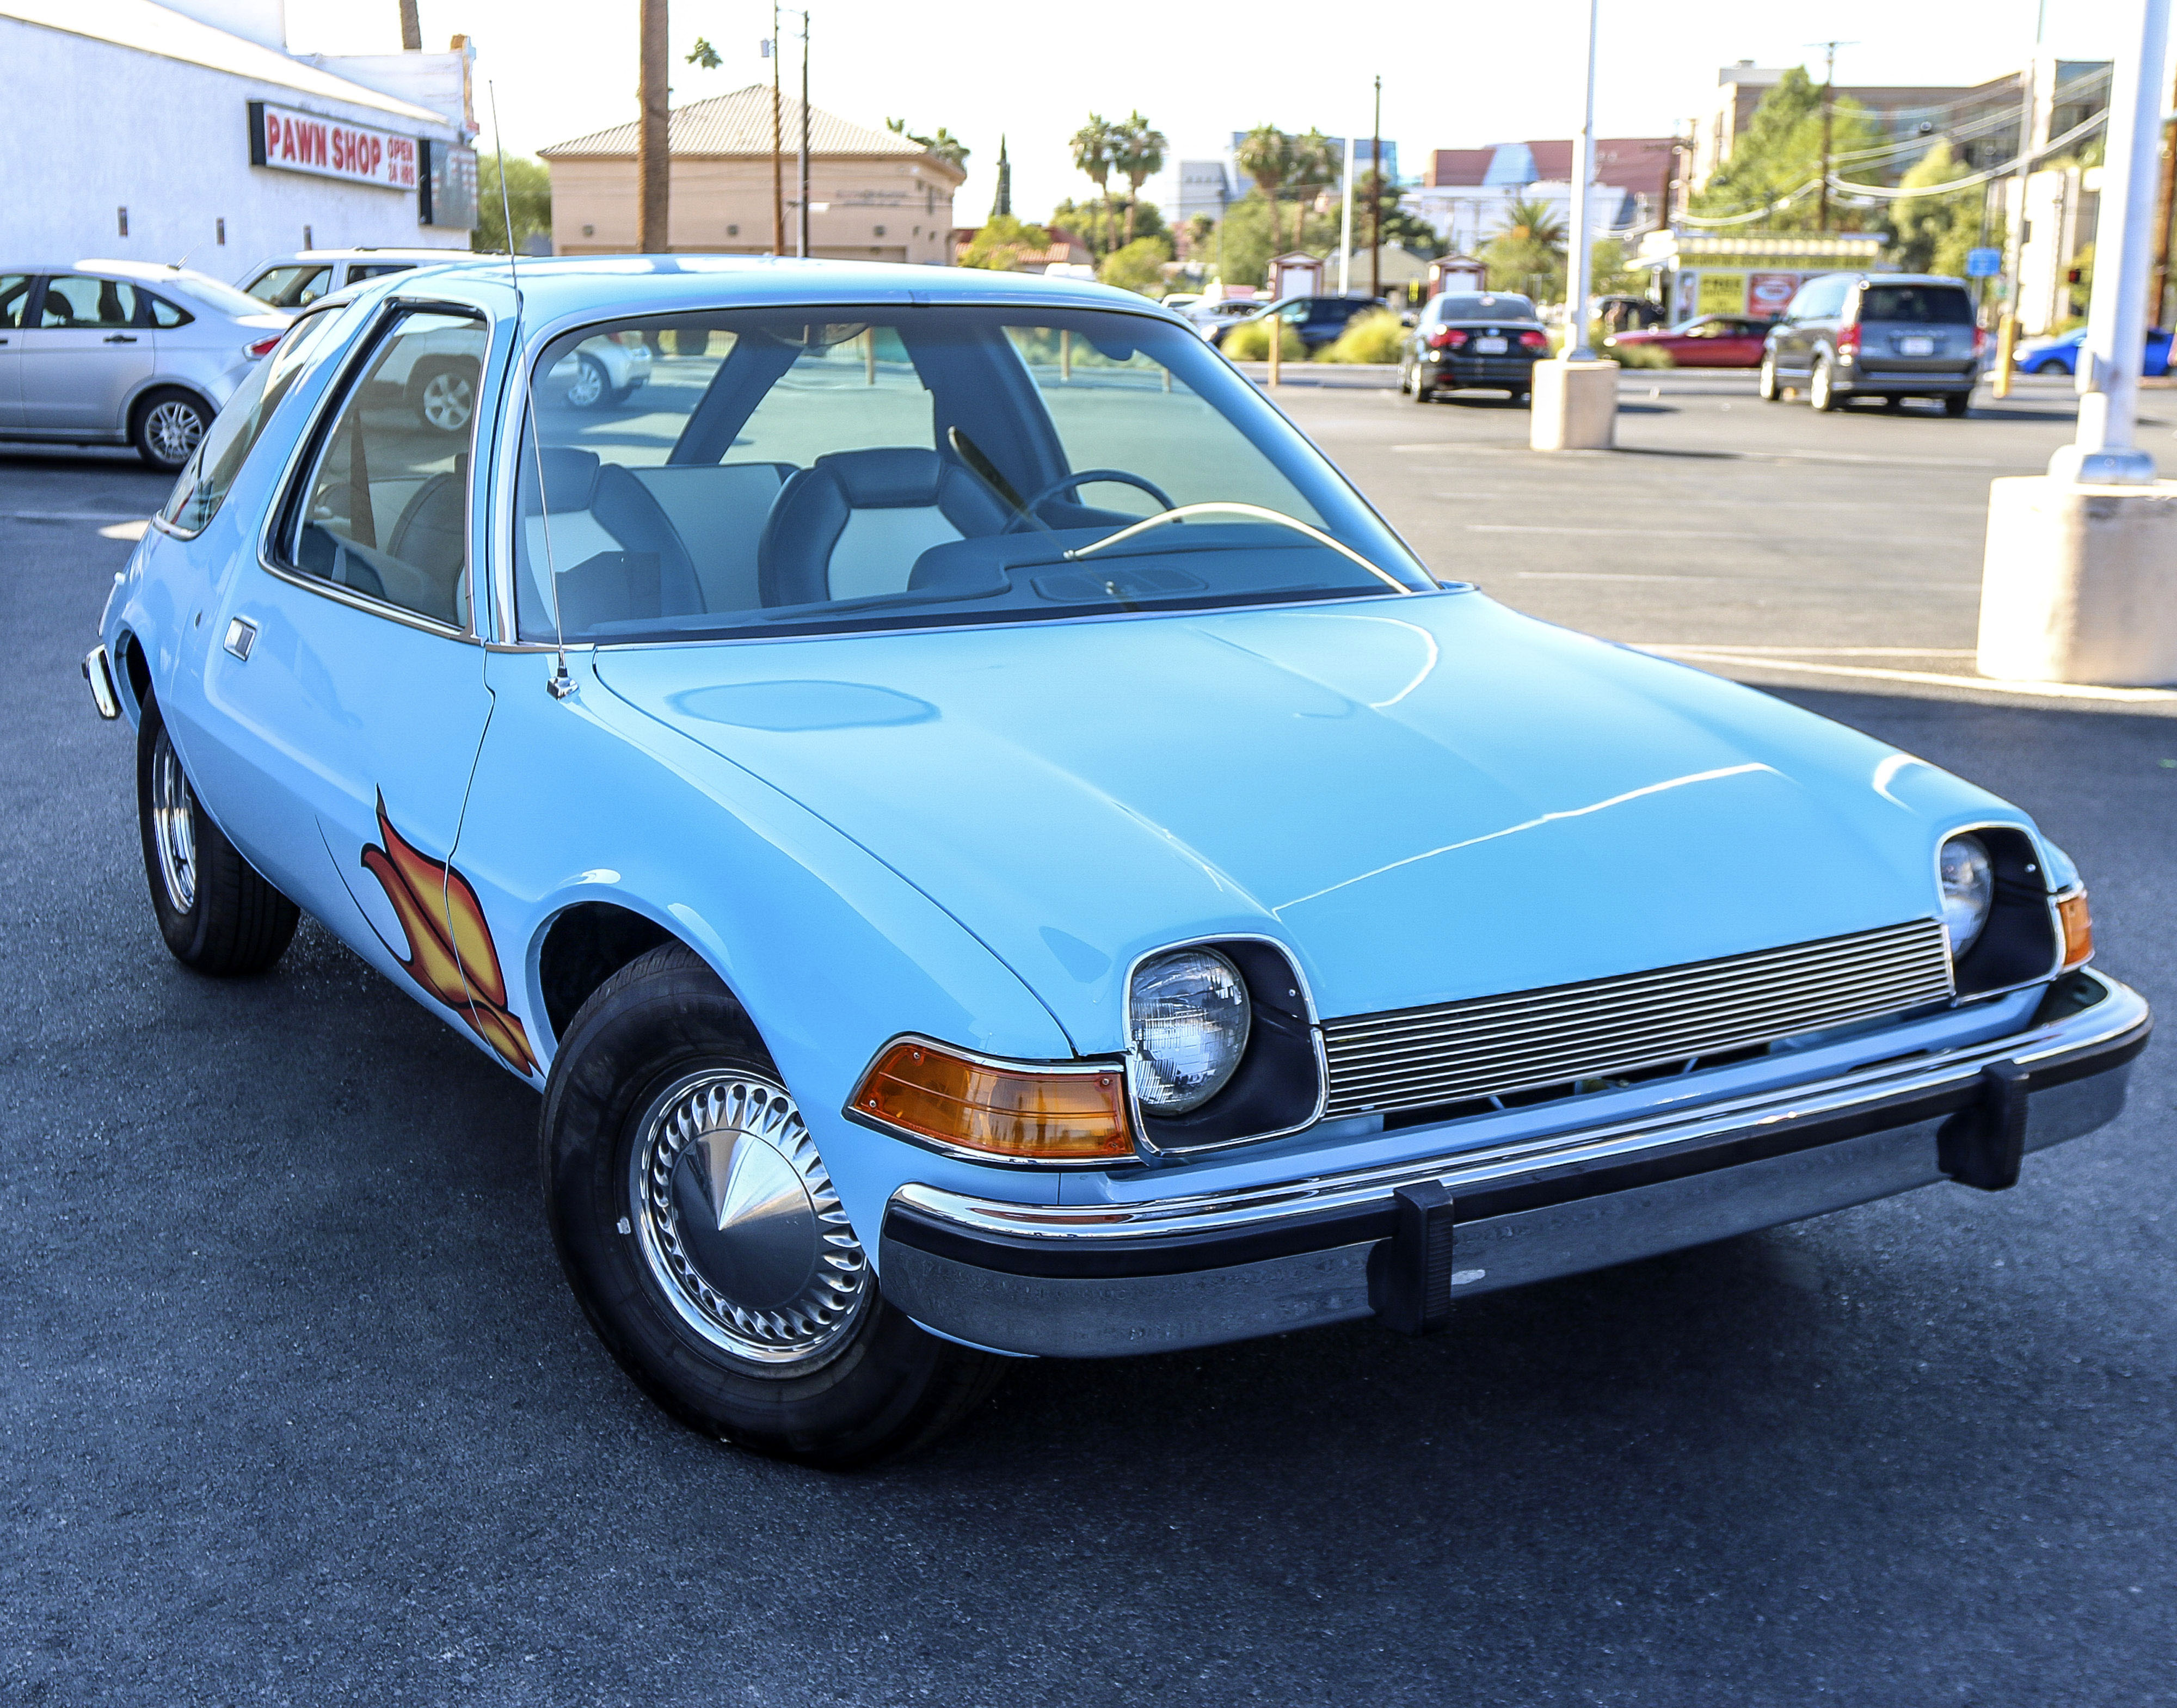 PIC FROM CATERS NEWS - (PICTURED: The AMC Pacer from the film, Waynes World. ) - Bismallah! The famous AMC Pacer from the 1992 smash hit film Waynes World has been let go at auction for 7,400 (30,734). The car rose to prominence during a scene in which main characters, Wayne Campbell and Garth Algar, belt out a head-banging rendition of Queens famous Bohemian Rhapsody. The film finished 1992 as one of the top grossing films of that year, and caused the rock ballad to rocket to number two in the charts, 17 years after it was first released. A standard AMC Pacer would be expected to sell for no more than ,000. Original modifications made for the film are the baby blue paint and the flames around the wheel arches, a hole in the roof for the famous liquorice dispenser, new rear wheelhouses to fit speaker boxes, and a cup dispenser in the inner dashboard. Tow hooks and steel plates were also welded to the car for filming and camera supports. The studio also purposefully mismatched the wheel combination of chrome spoked wheels in the rear and standard hubcaps in the front. These features have been kept during the cars extensive restoration. SEE CATERS COPY.